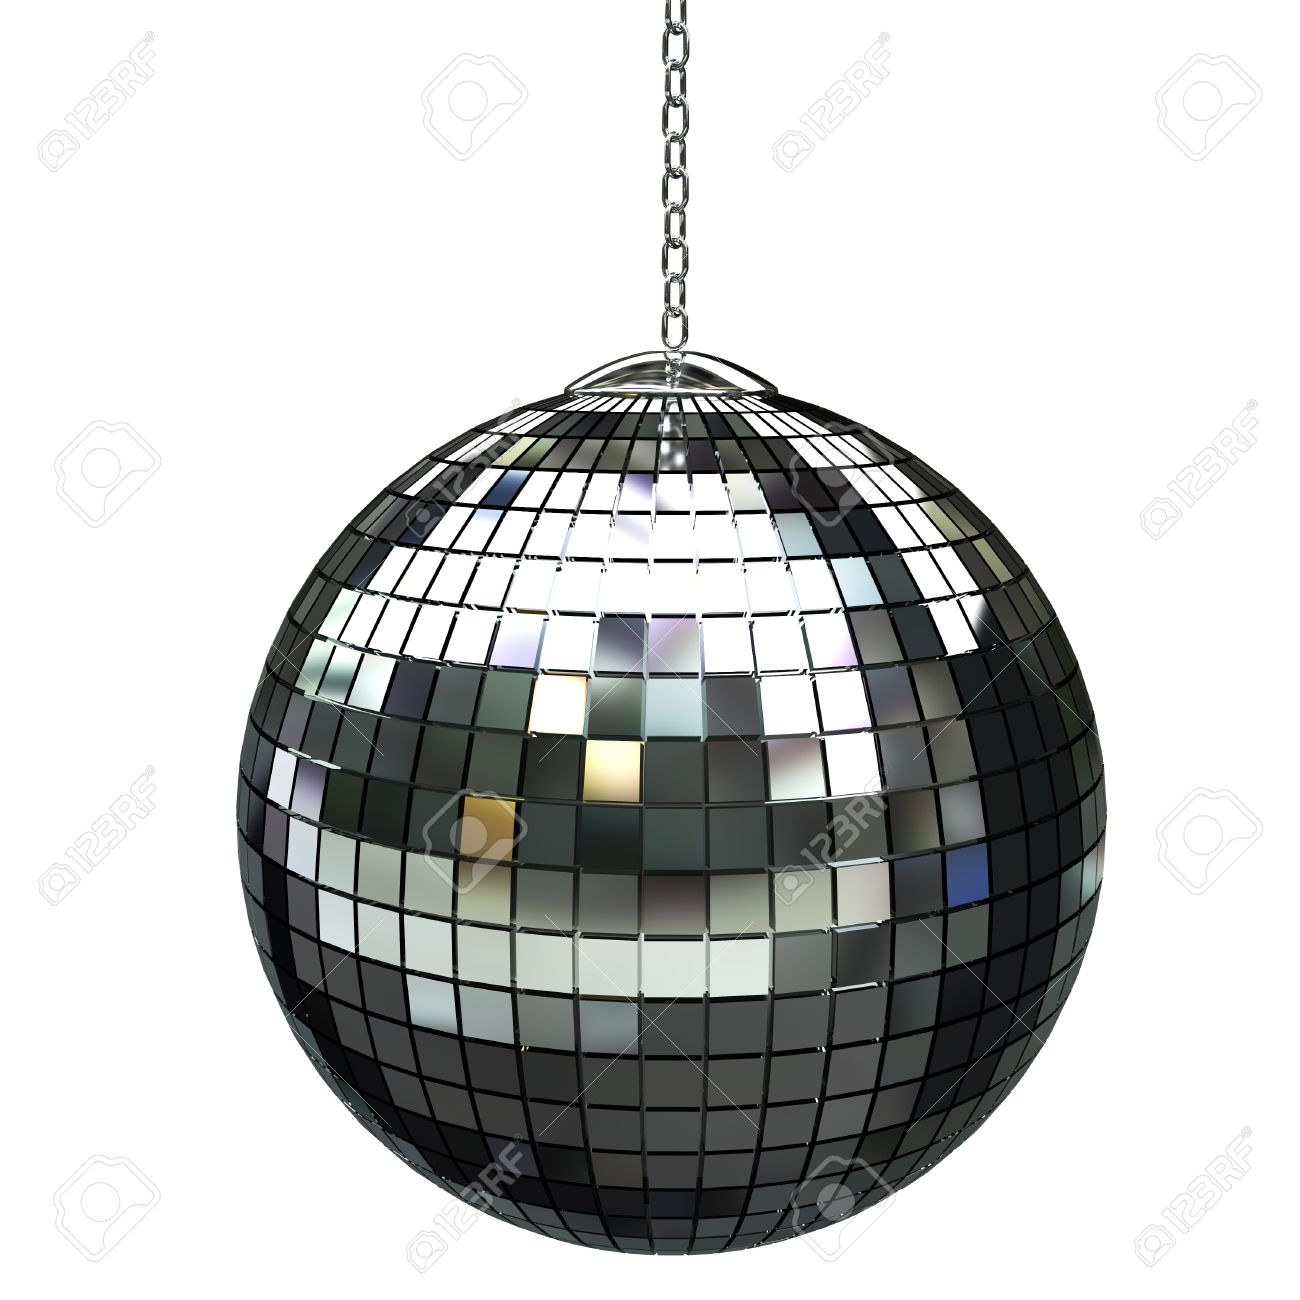 Disco Ball clipart #16, Download drawings